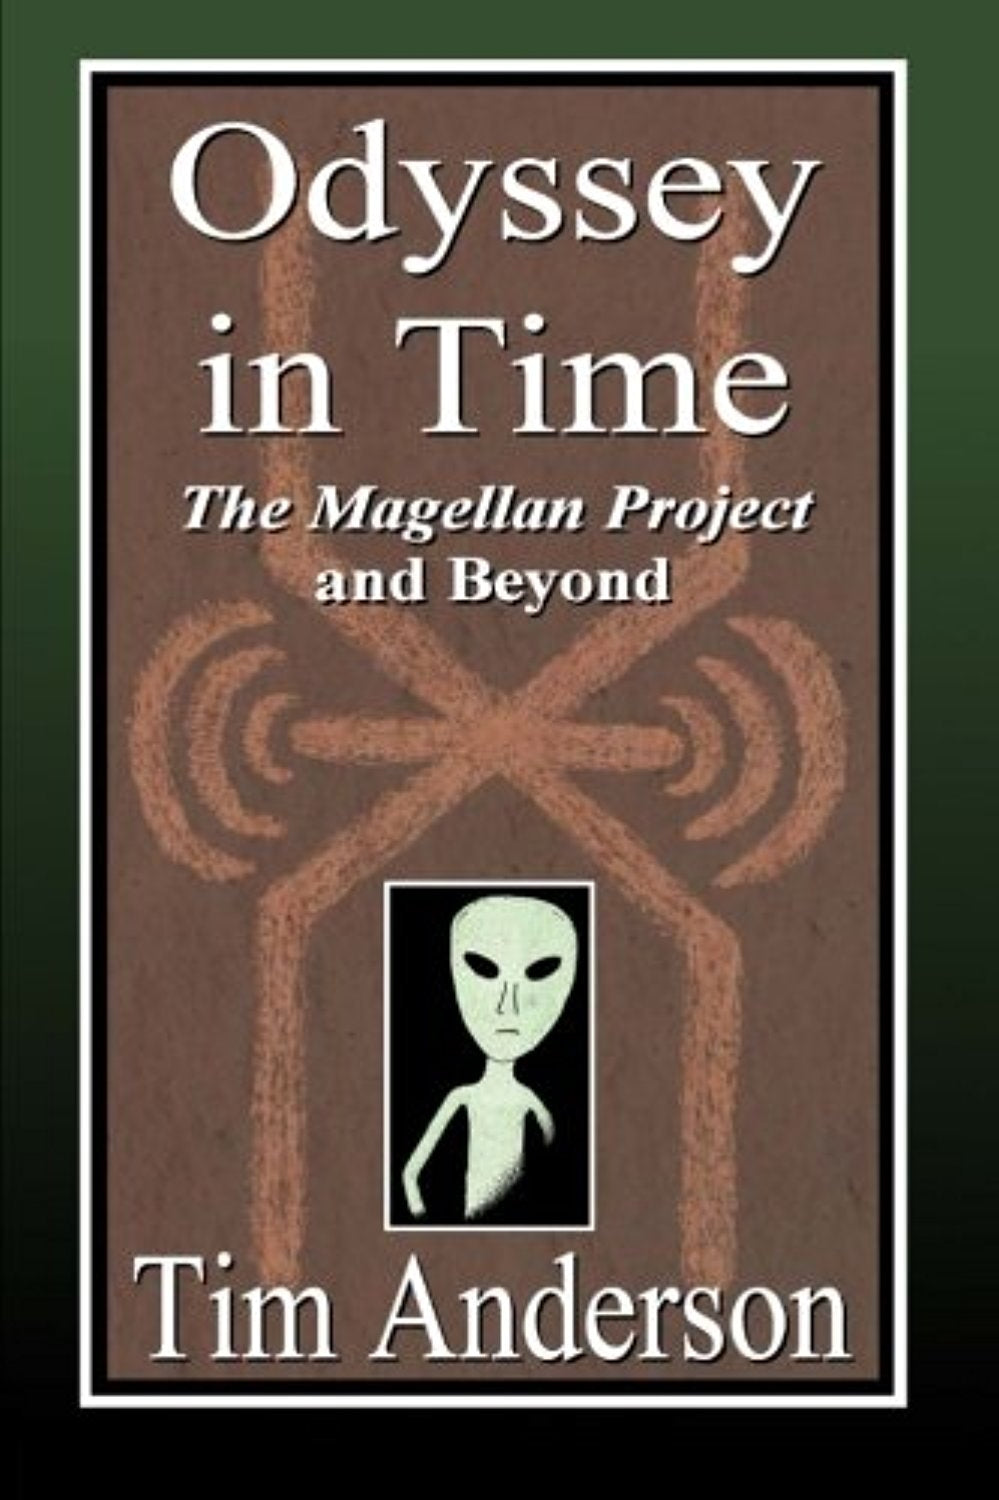 Odyssey in Time: The Magellan Project and Beyond